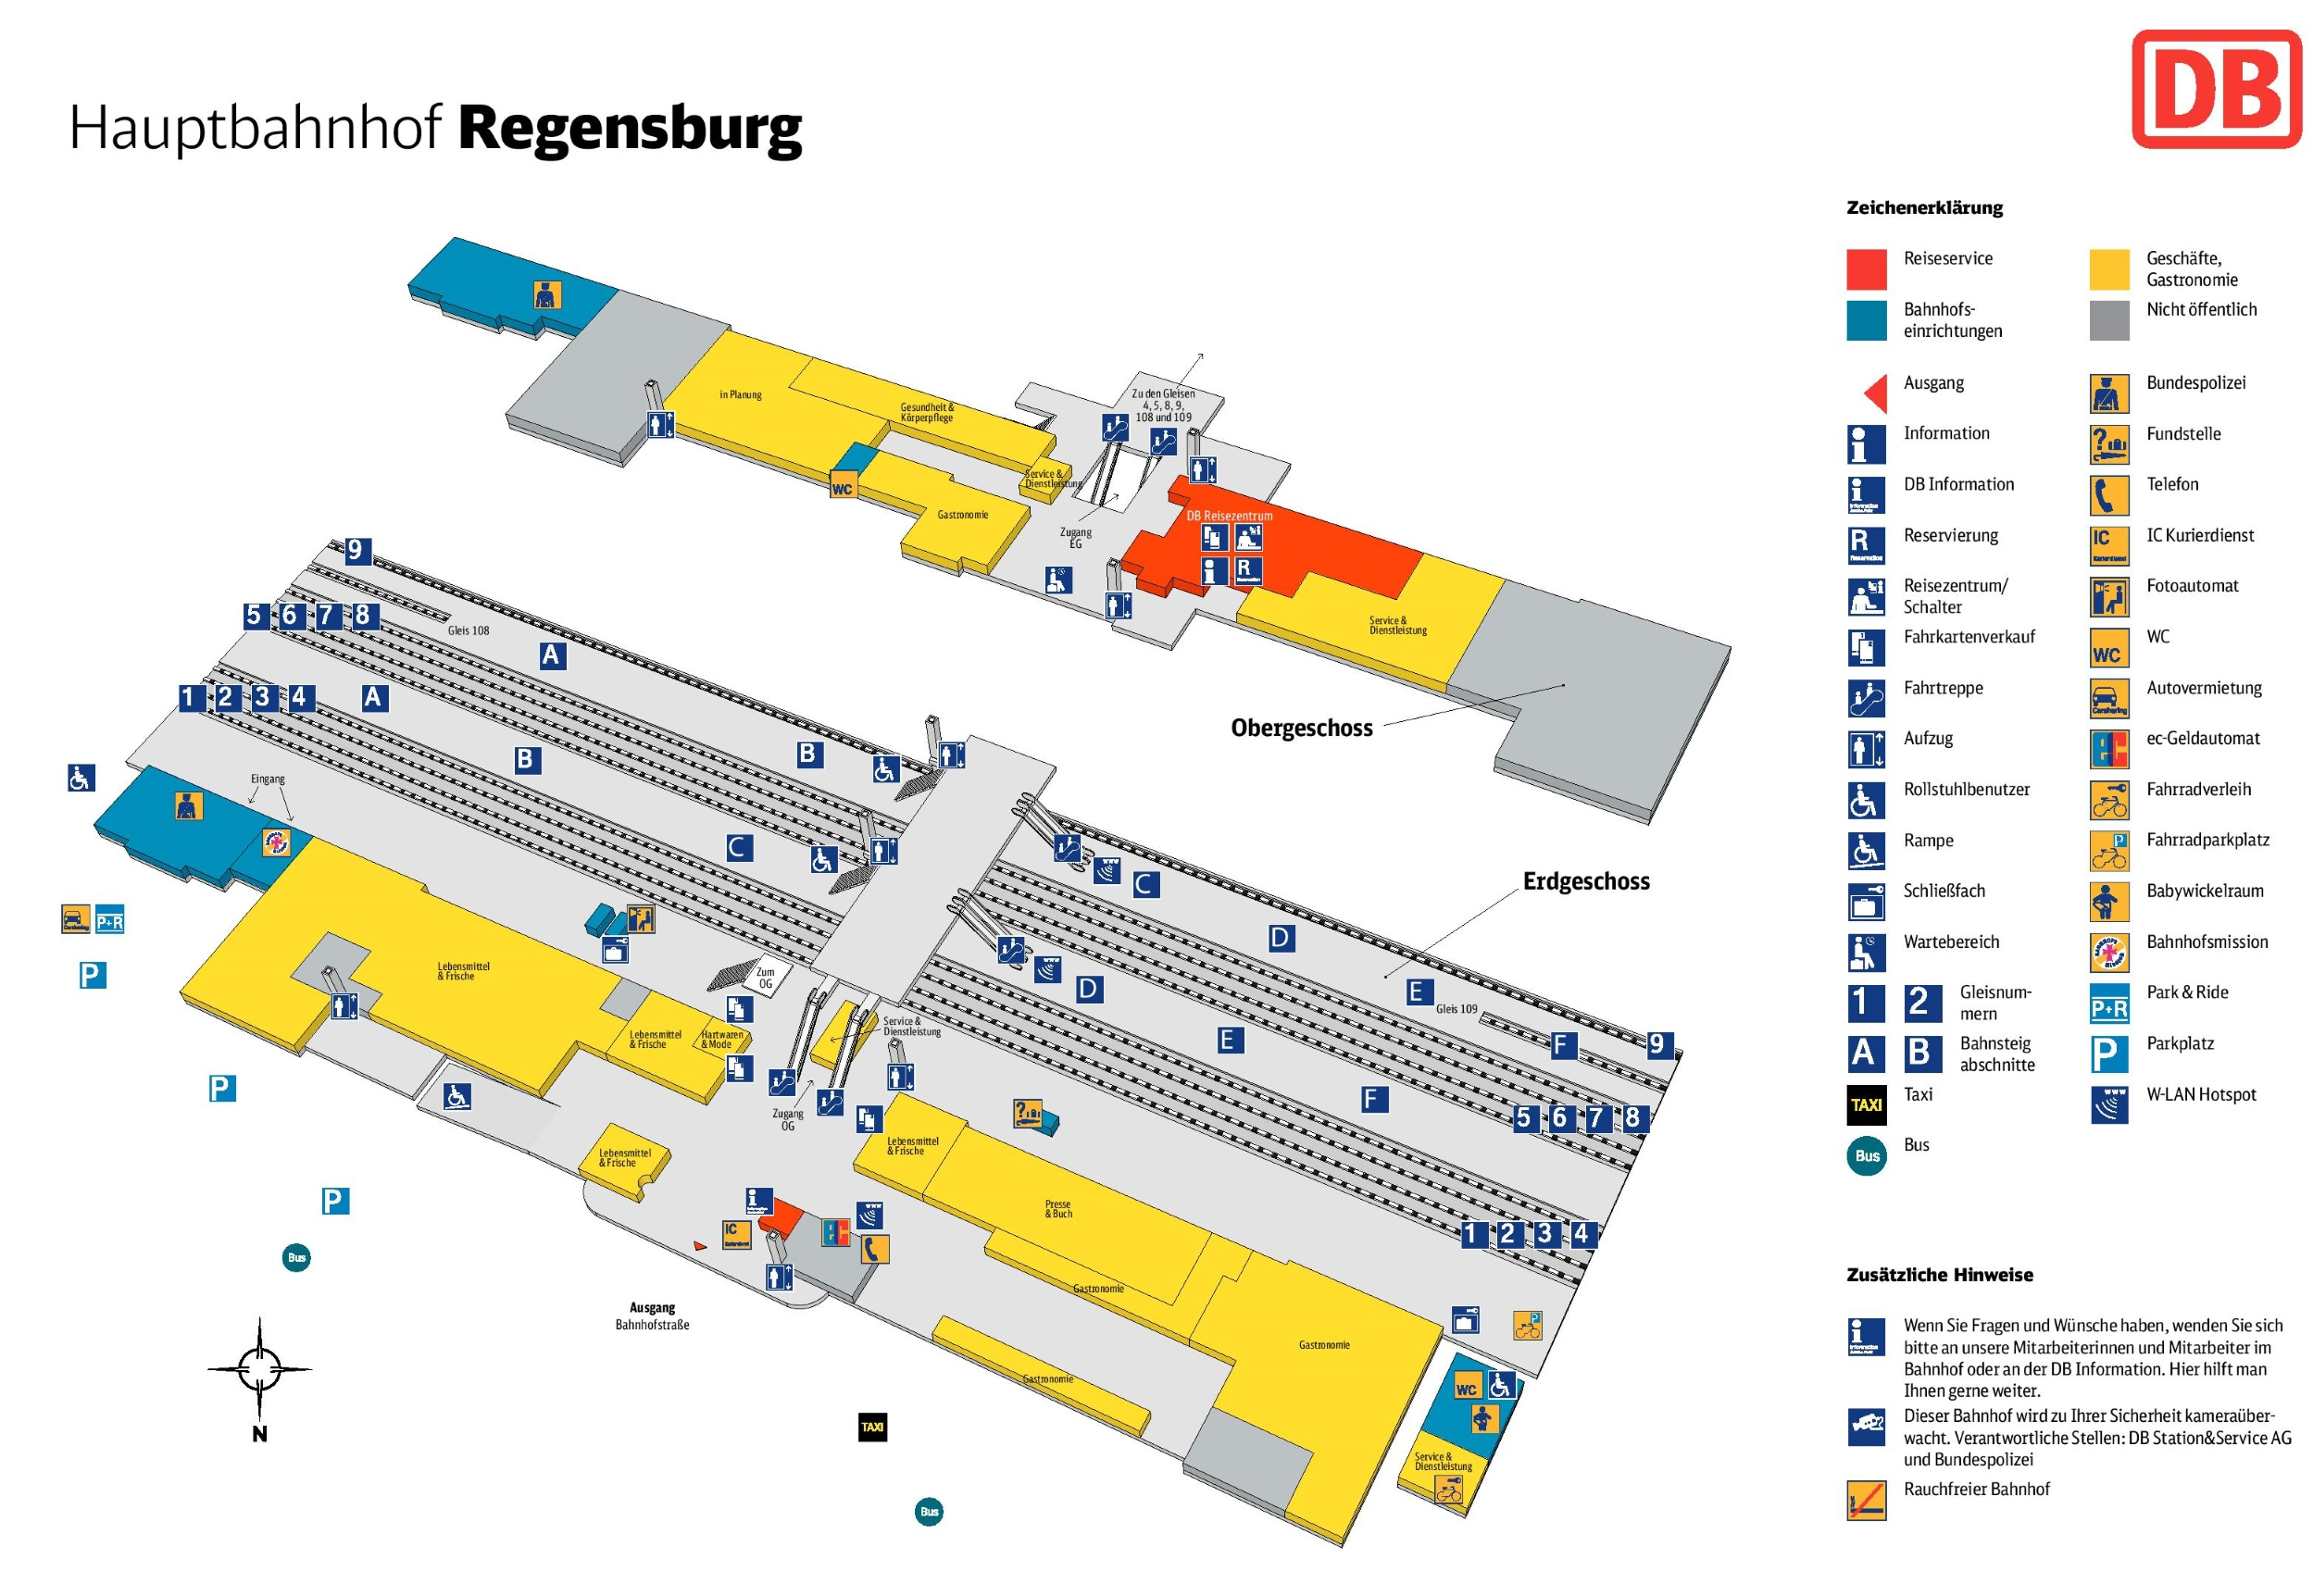 regensburg hauptbahnhof map. Black Bedroom Furniture Sets. Home Design Ideas